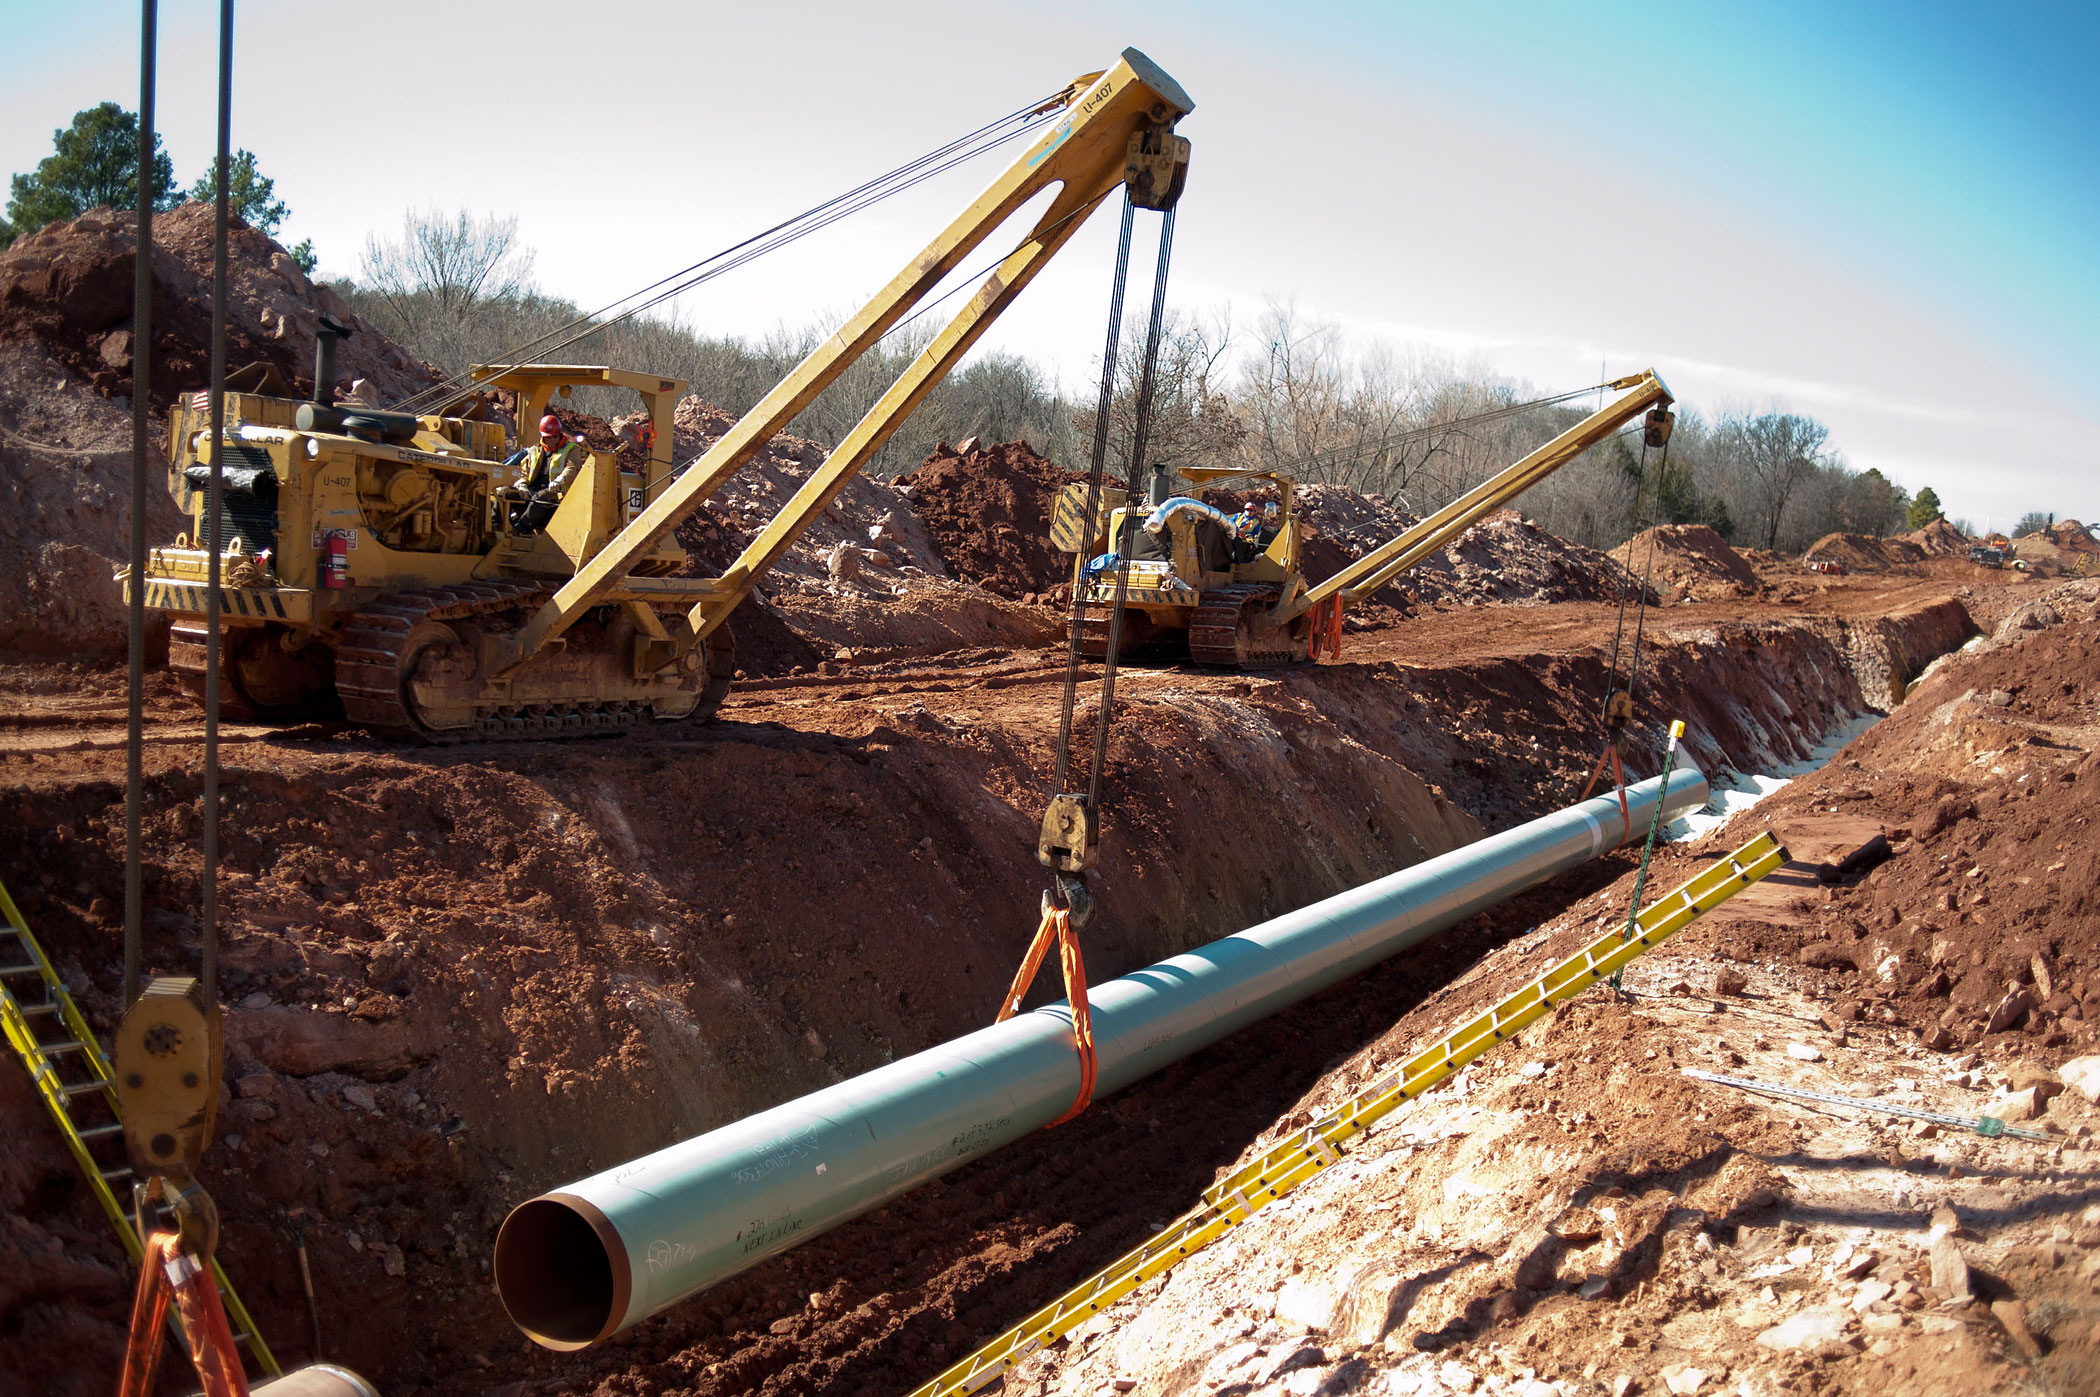 A sixty-foot section of pipe is lowered into a trench during construction of the Gulf Coast Project pipeline in Prague, Oklahoma, U.S., on March 11, 2013.